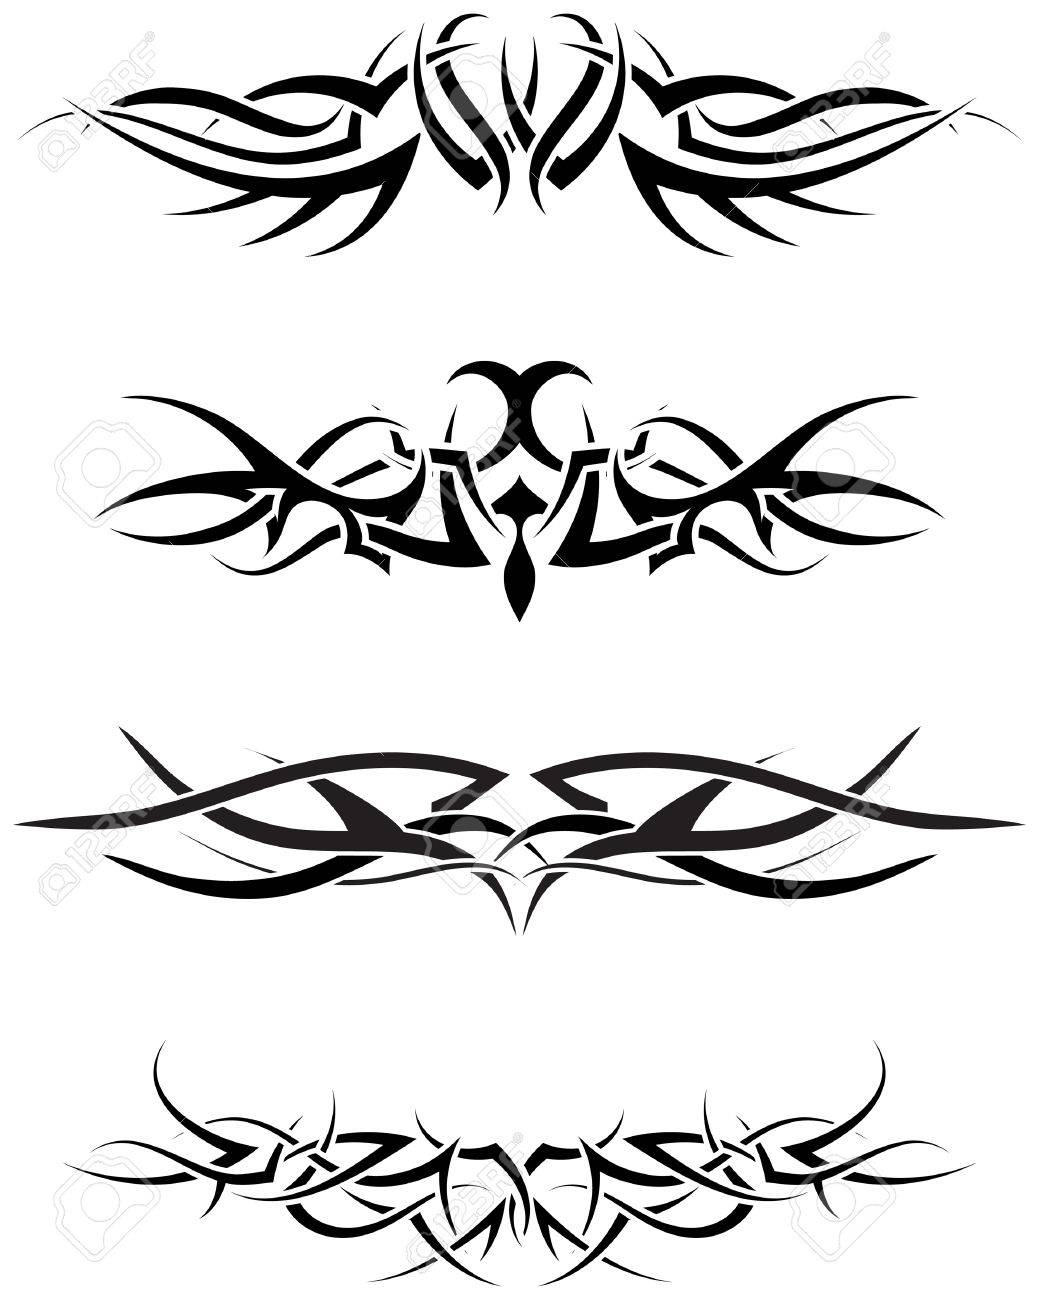 Patterns of tribal tattoo for design use Stock Vector - 6477159